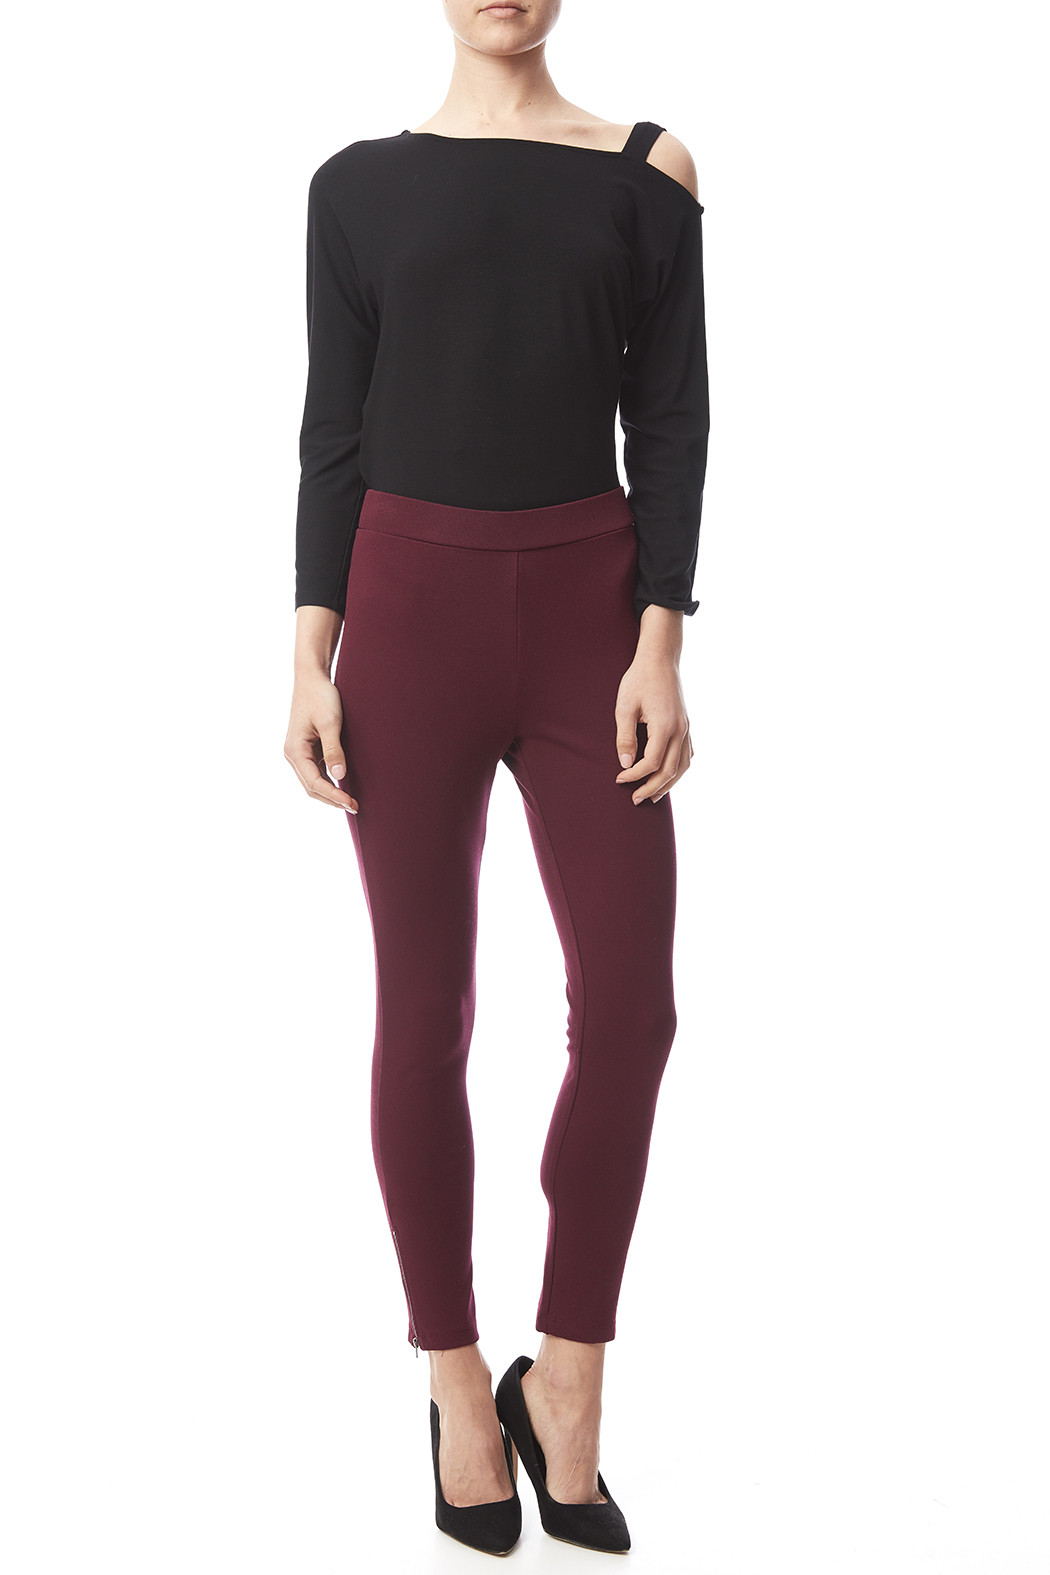 Must Have Zip Bottom Legging from Charlotte by Leola ...